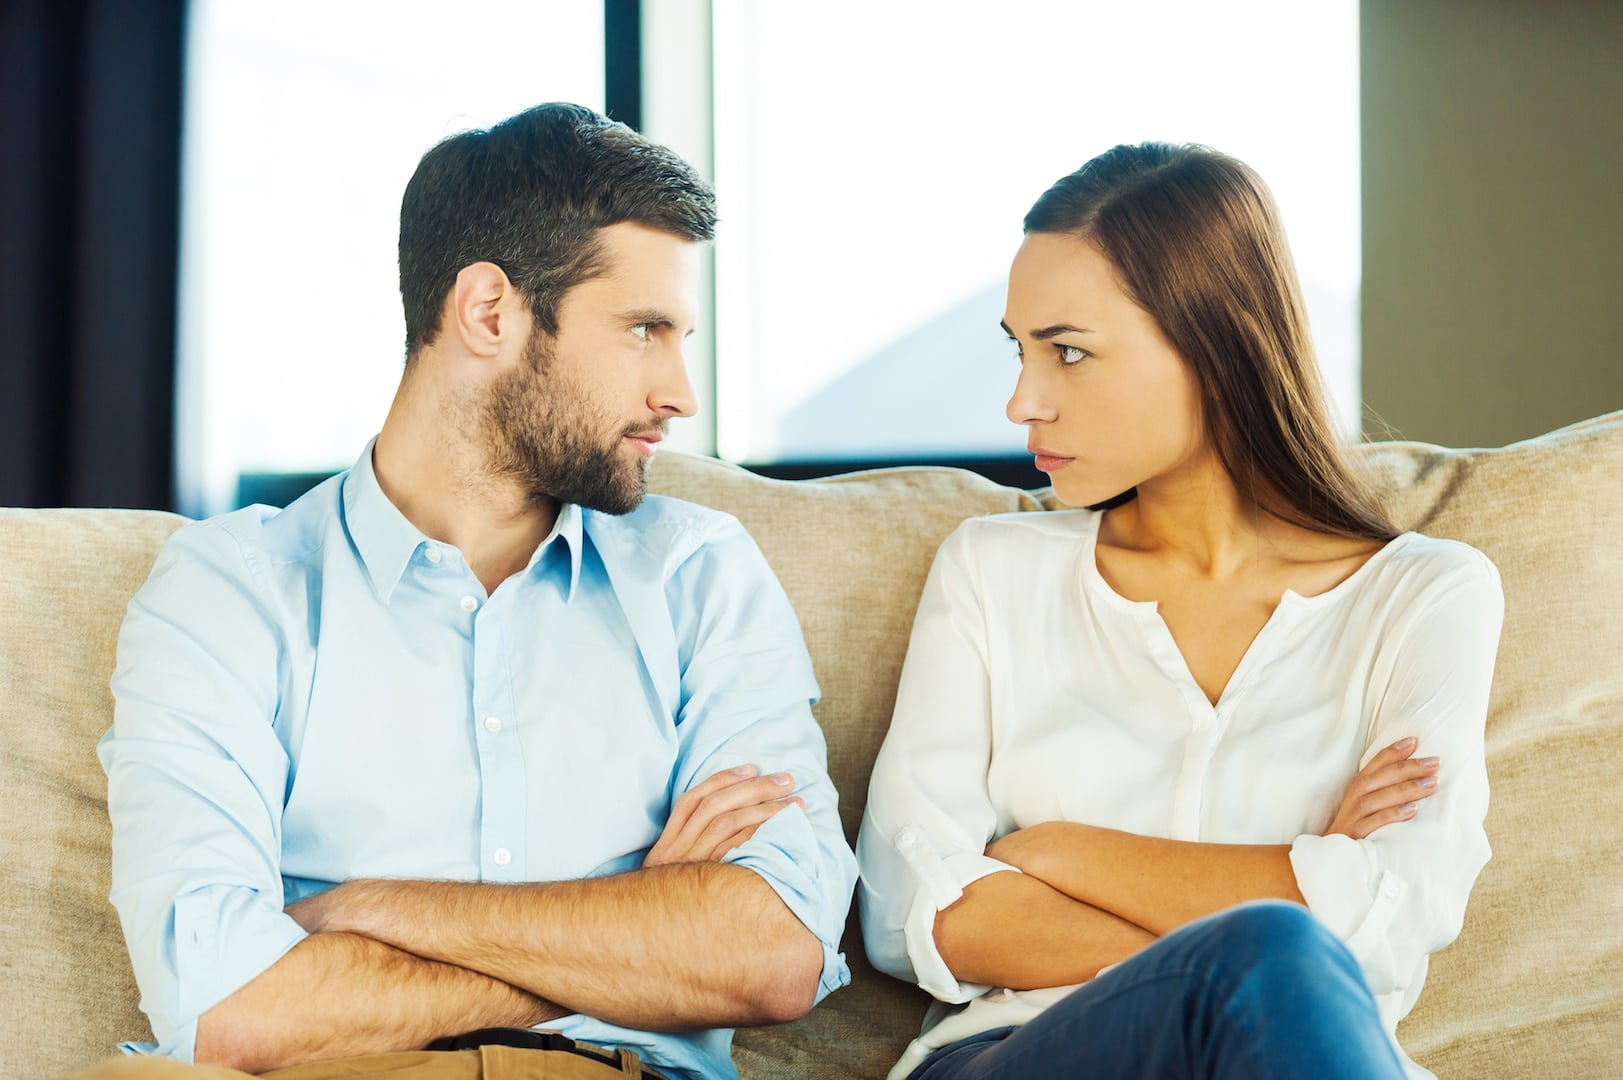 Marital Conflict Vulnerable - AdobeStock_74686176 copy